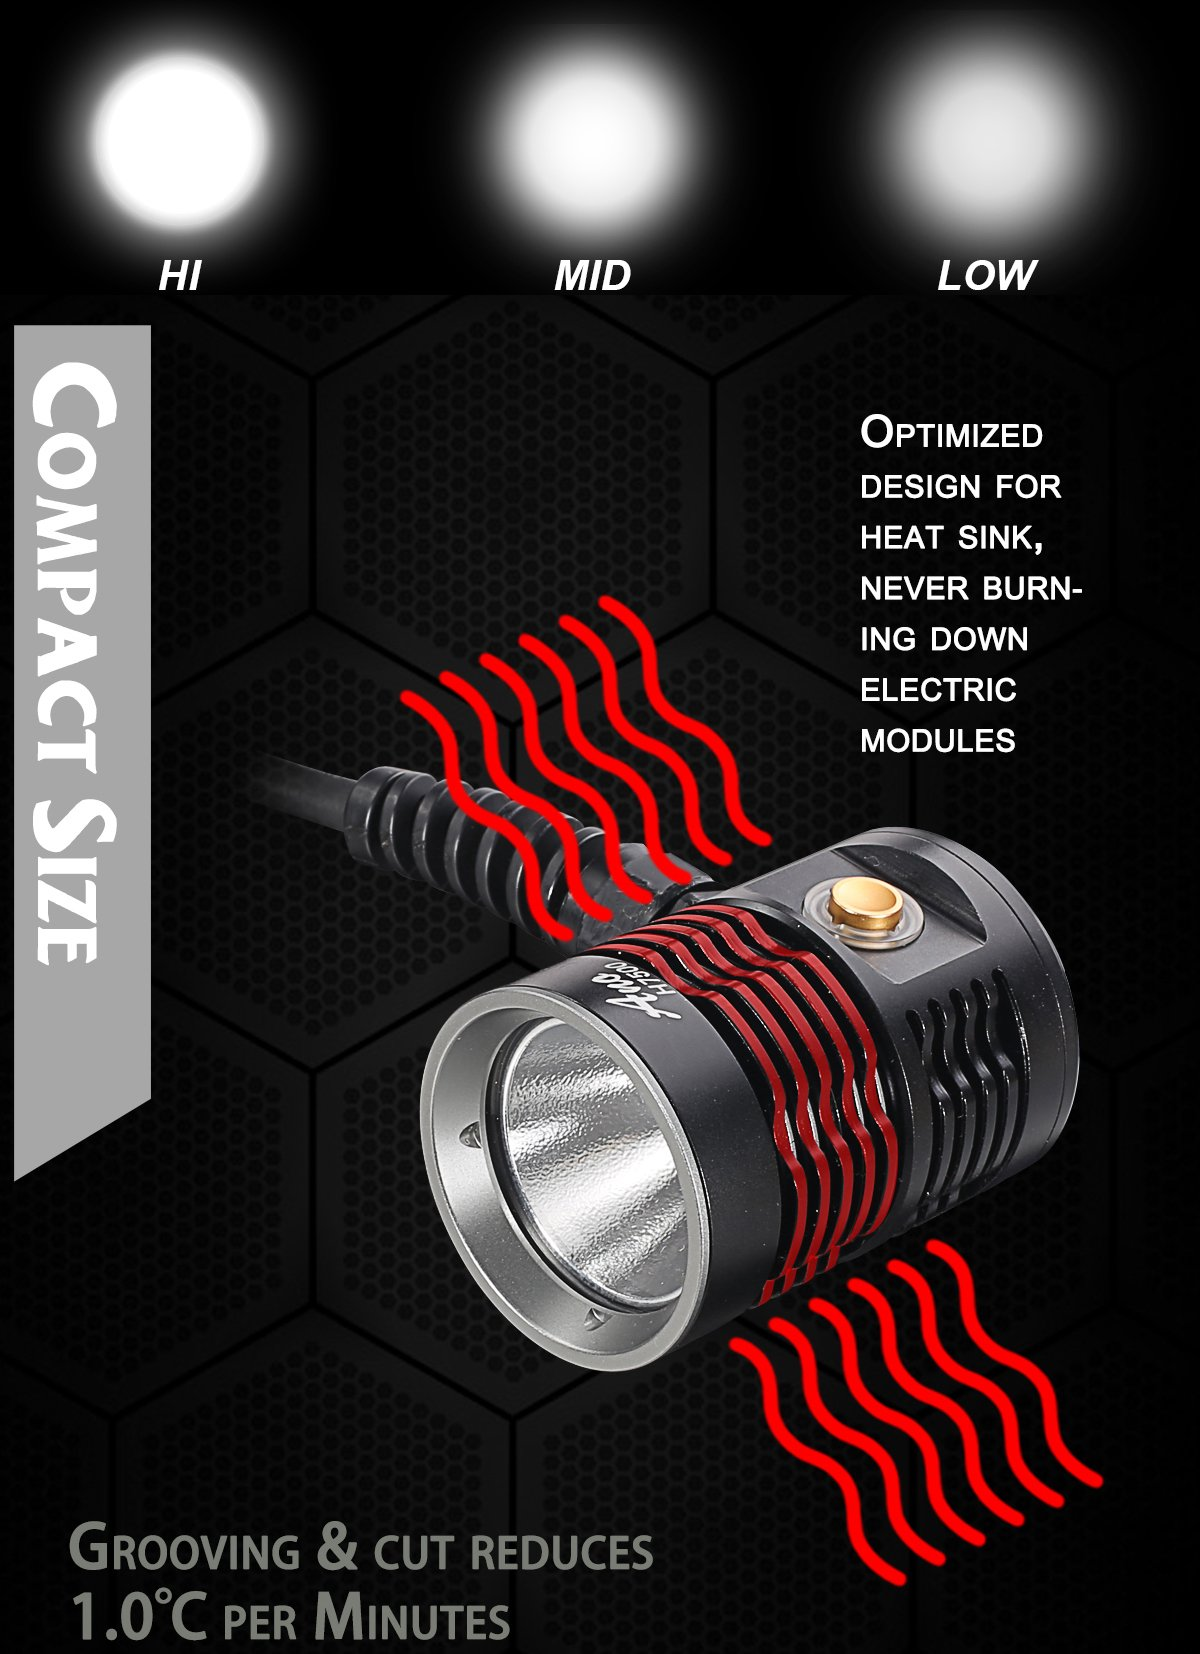 Ano H7500 Canister Dive Light 2750 Lumens Single Cree LED Cave Wreck Diver Primary Diving Light Diving Headlamp Waterproof 650ft 2 x ICR18650 Batteries and USB Charger Included